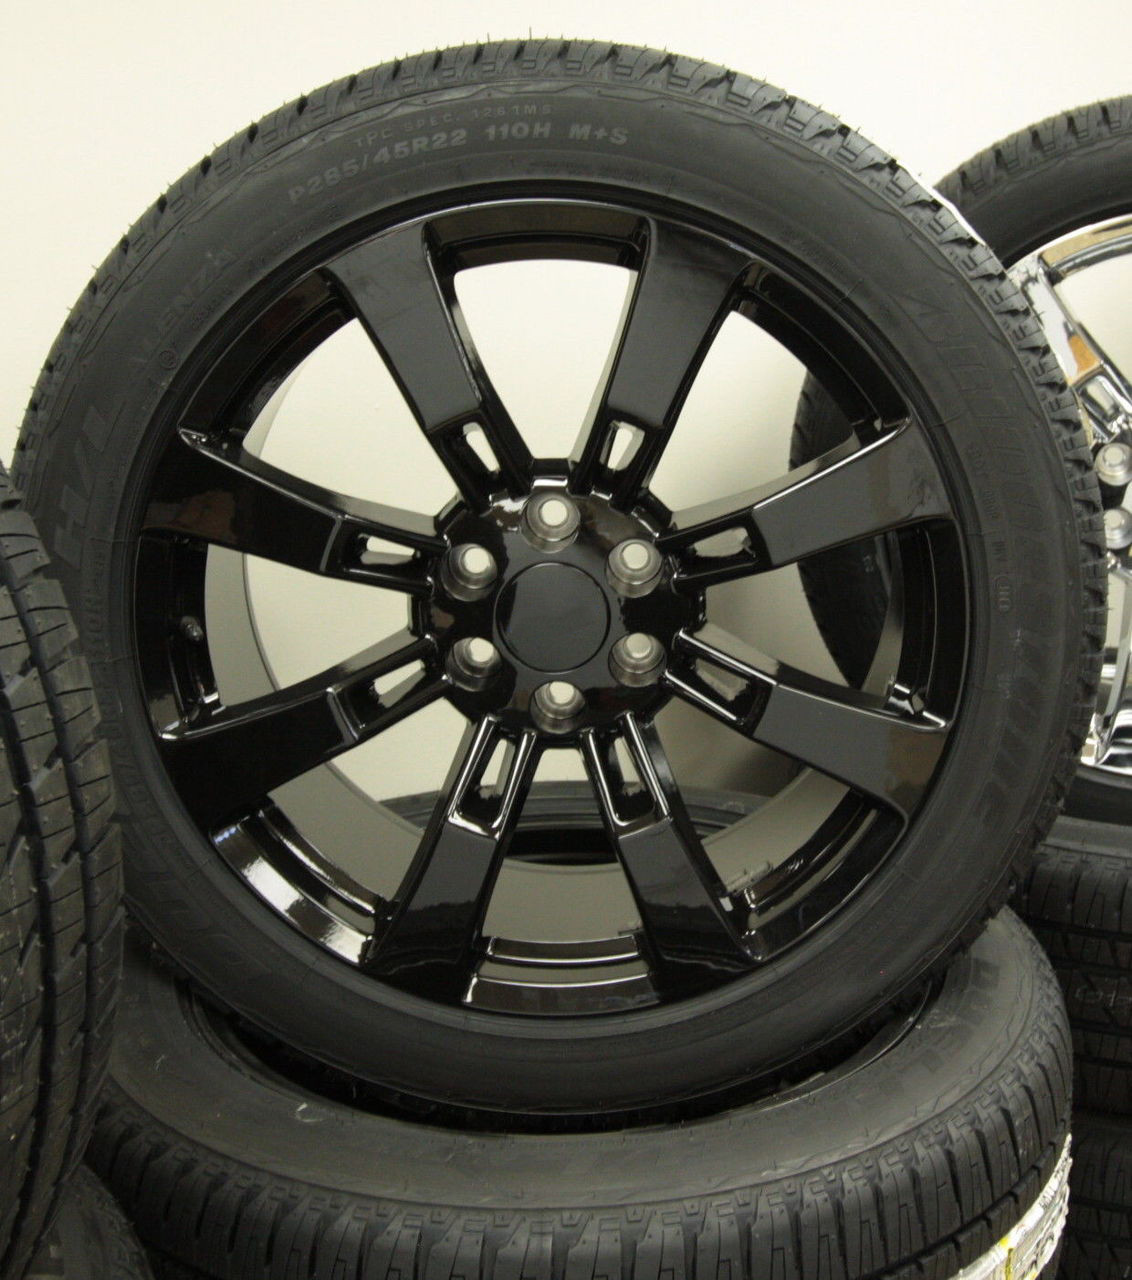 22 Inch Tires >> Gloss Black 22 Eight Spoke Wheels With Bridgestone Tires For Chevy Silverado Tahoe Suburban New Set Of 4